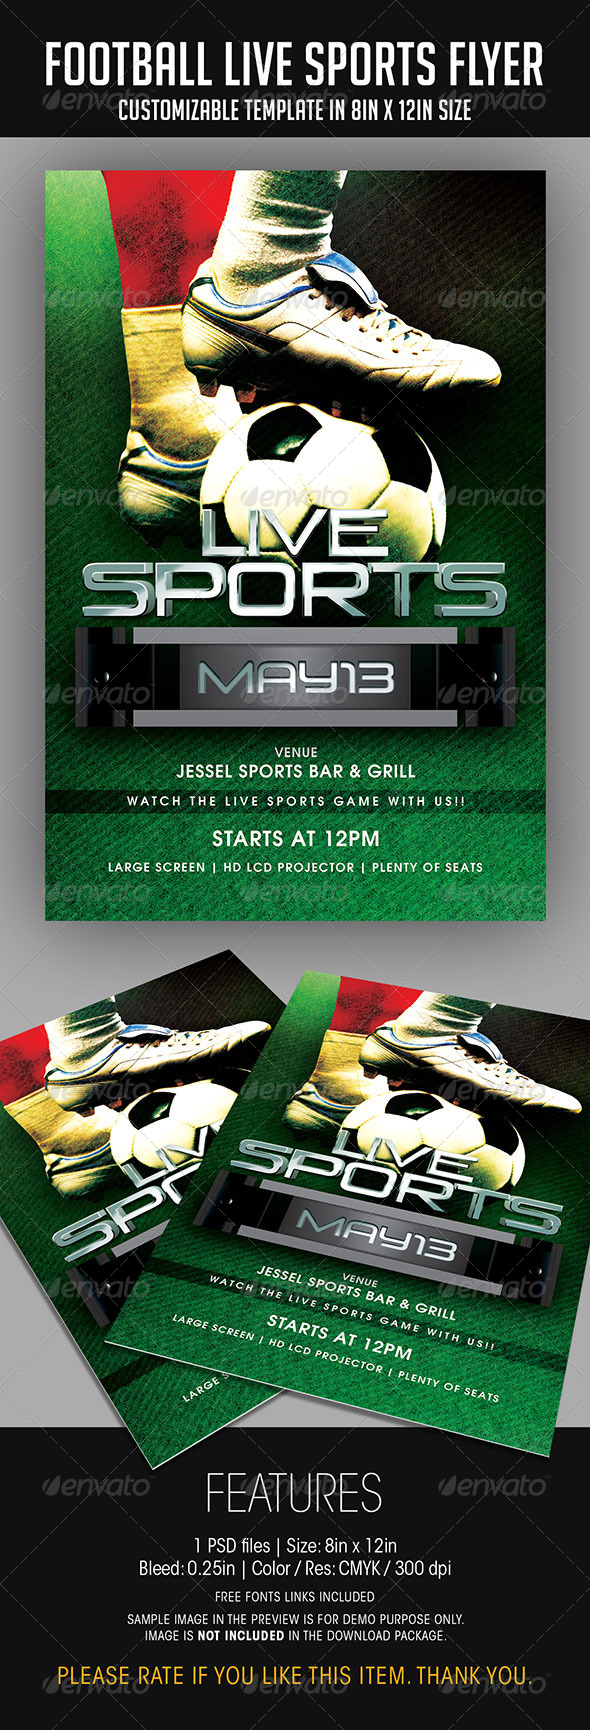 Football Live Sports Flyer - Sports Events